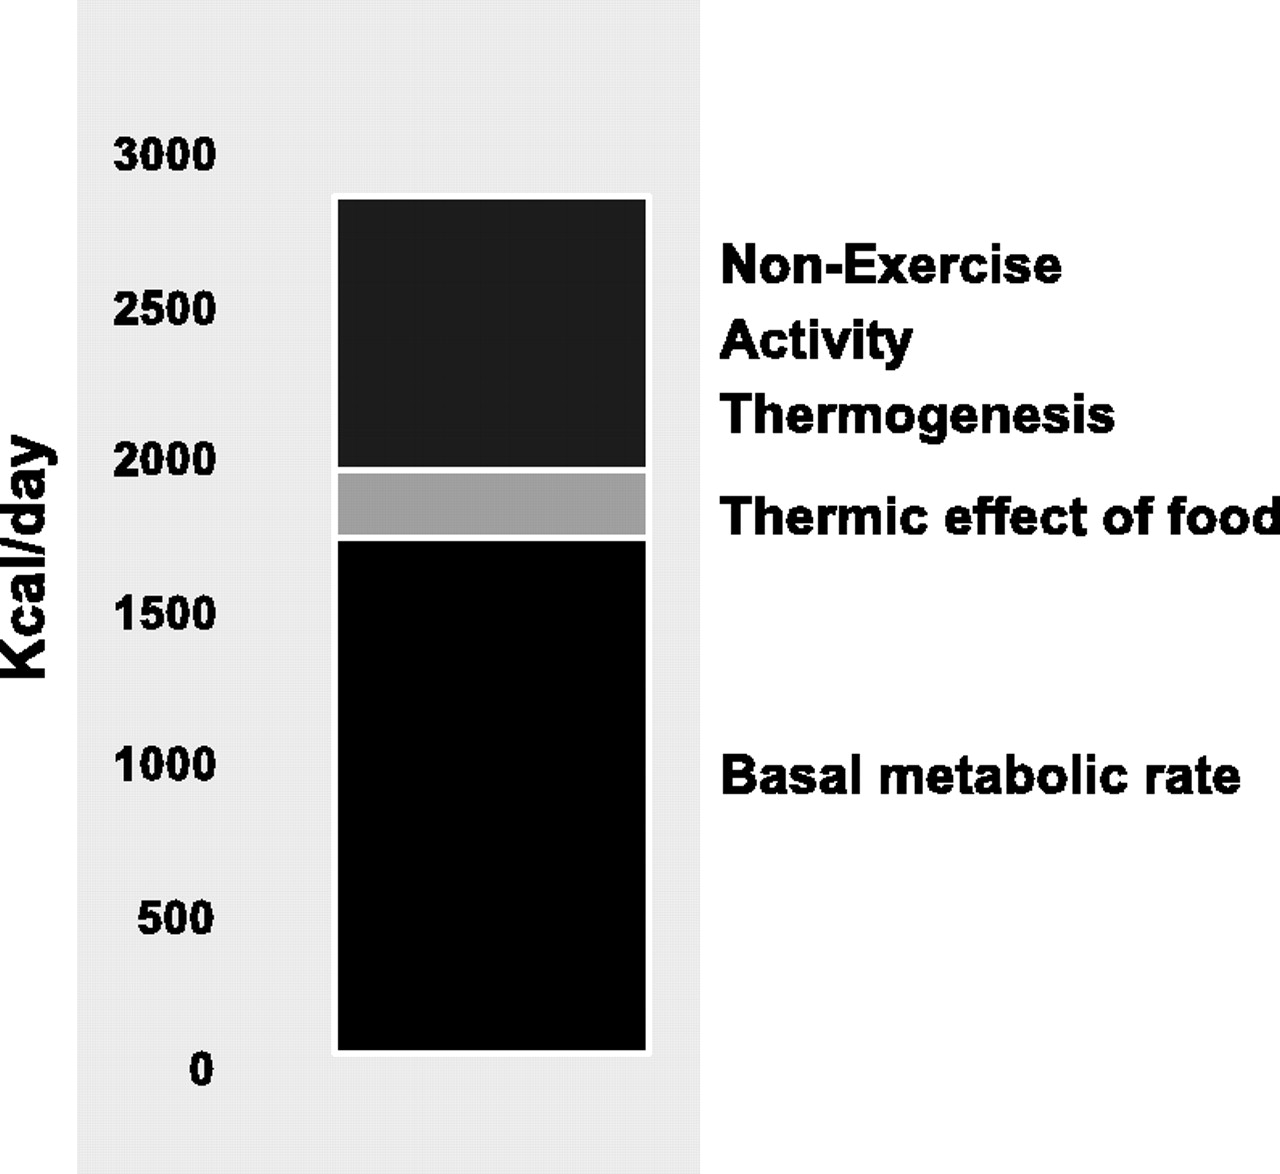 NEAT (non-exercise activity thermogenesis)